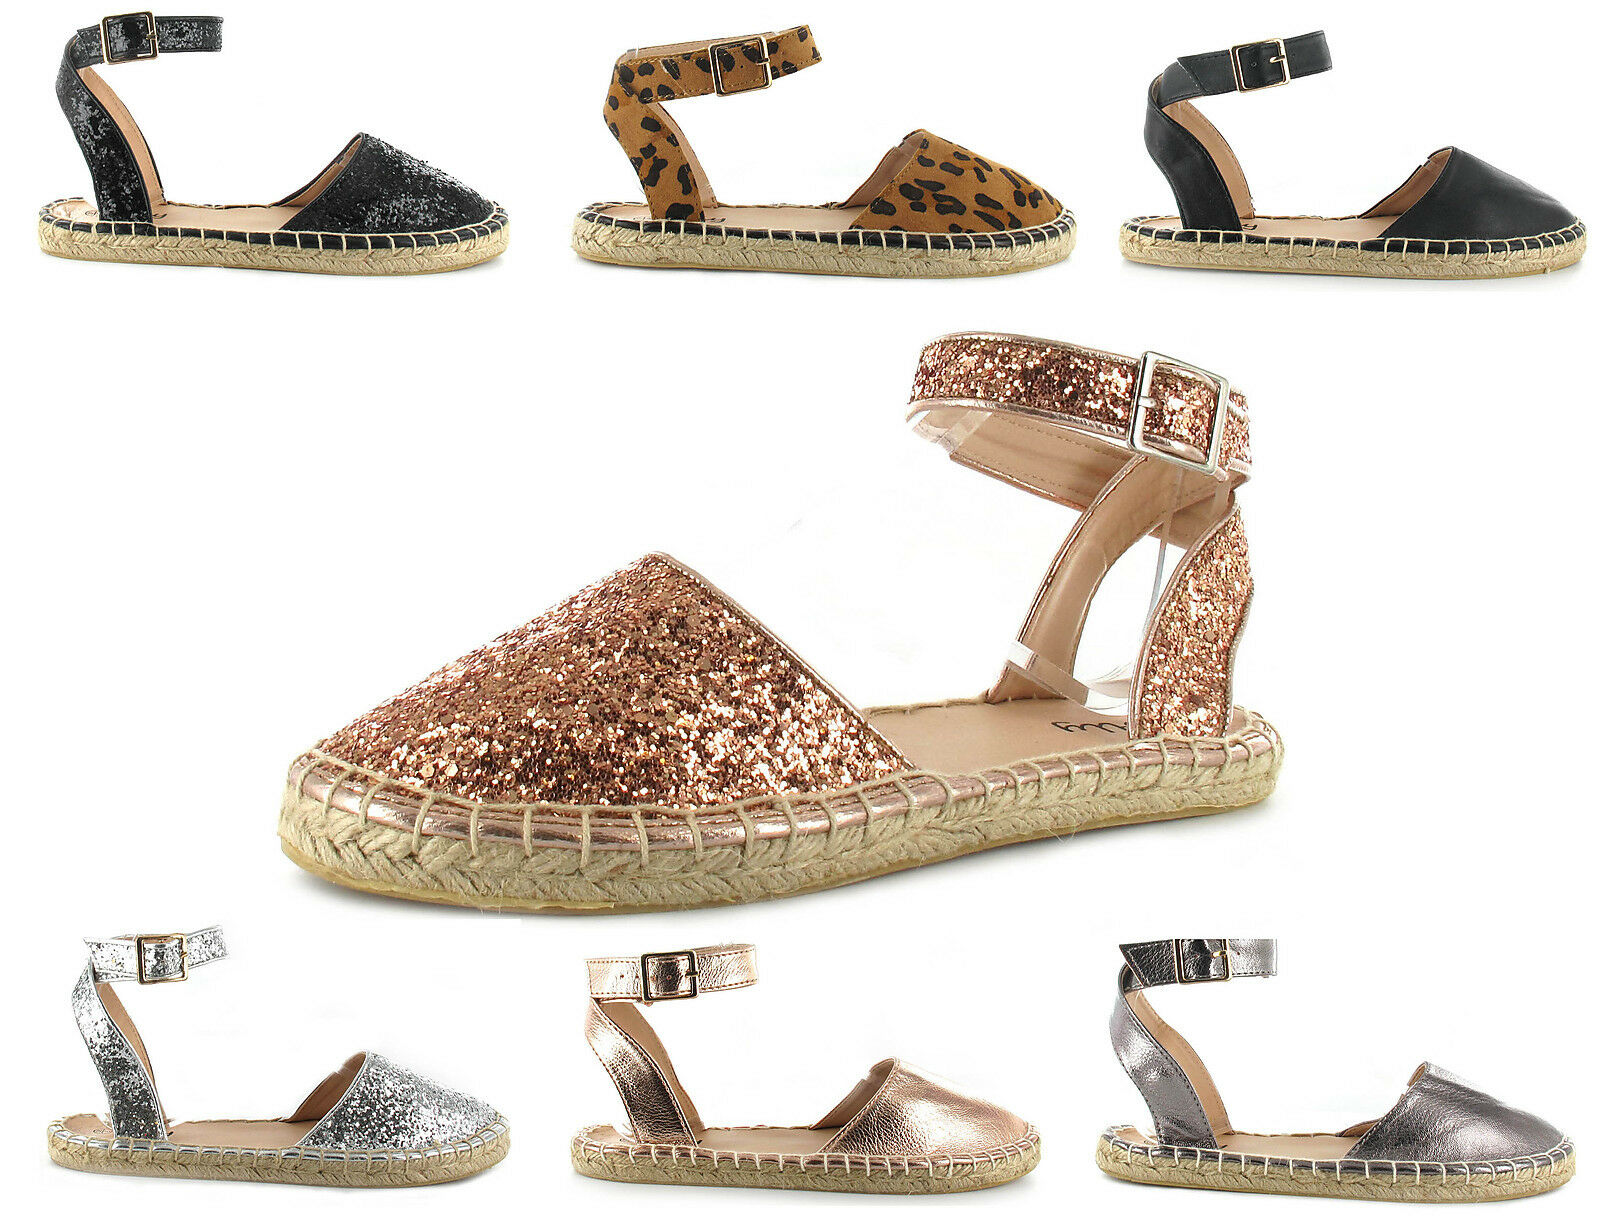 Womens Ladies Holiday Strap Glitter Espadrilles Flat Ankle Strap Holiday Shoes Sandal Size 3-9 ef53c5